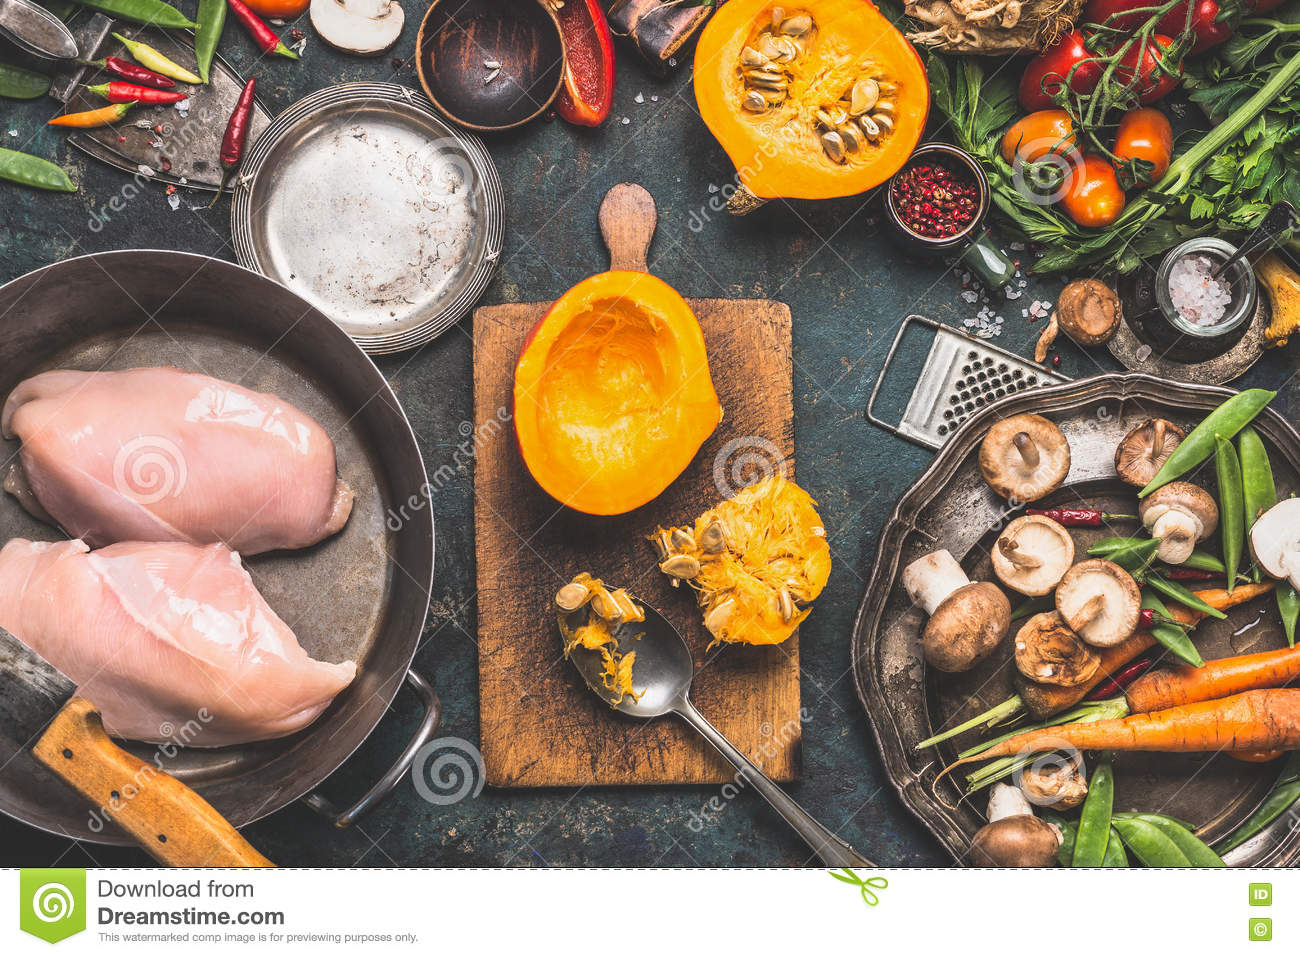 Preparation with Pumpkin , vegetables and mushrooms ingredients with Chicken breast in cooking pot, dark rustic background